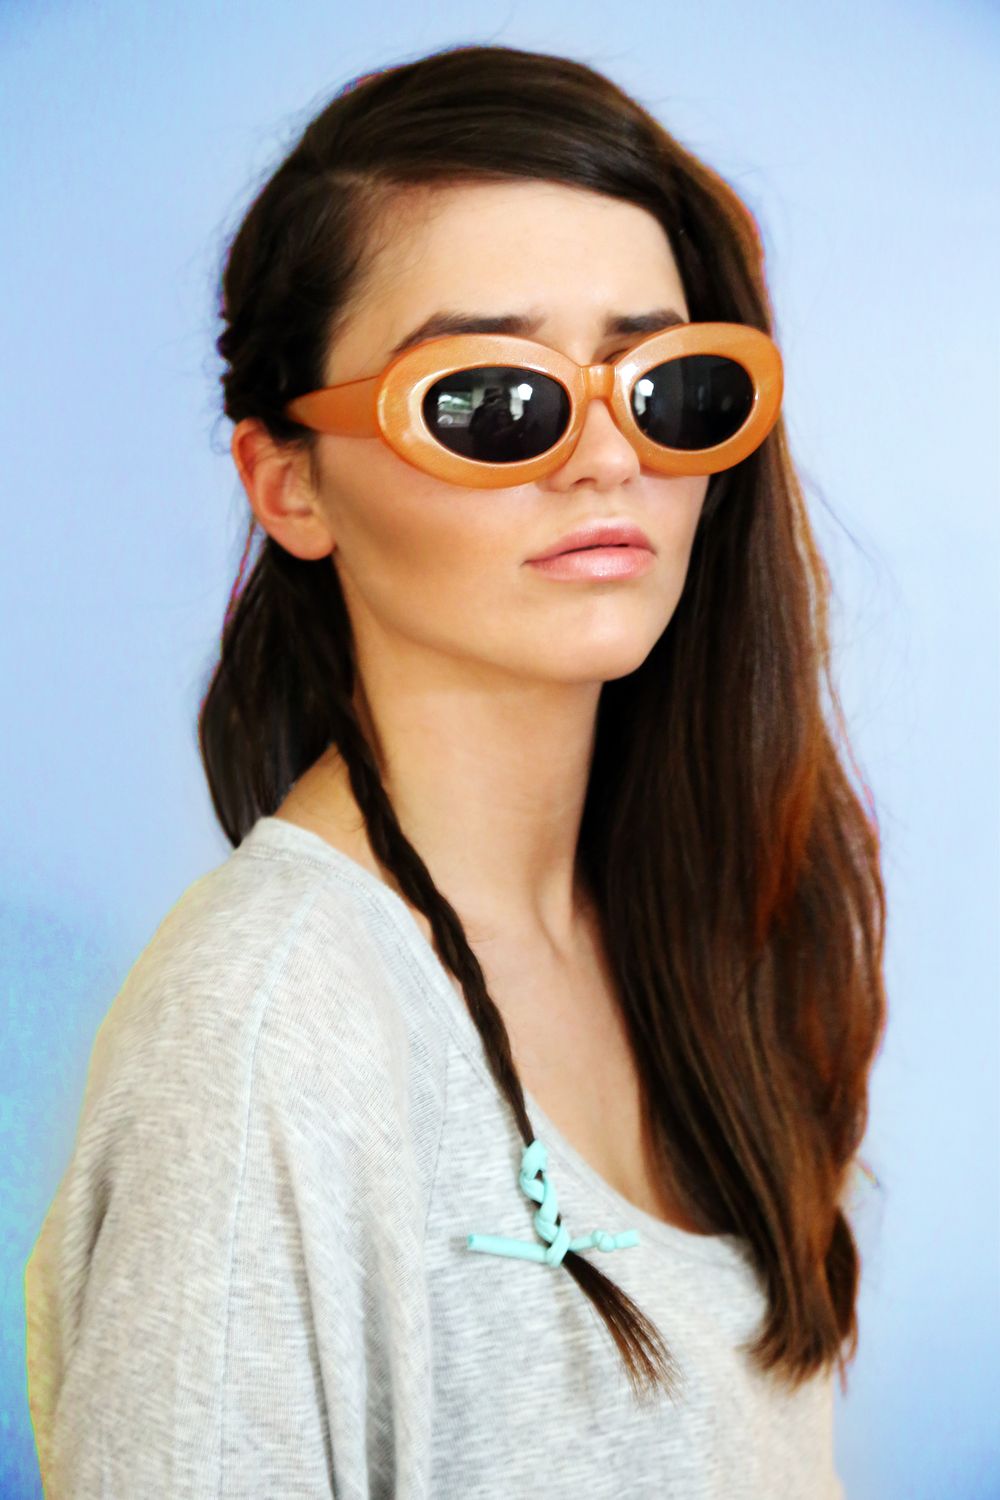 Moriah_Orange Sunnies_FINAL.jpg